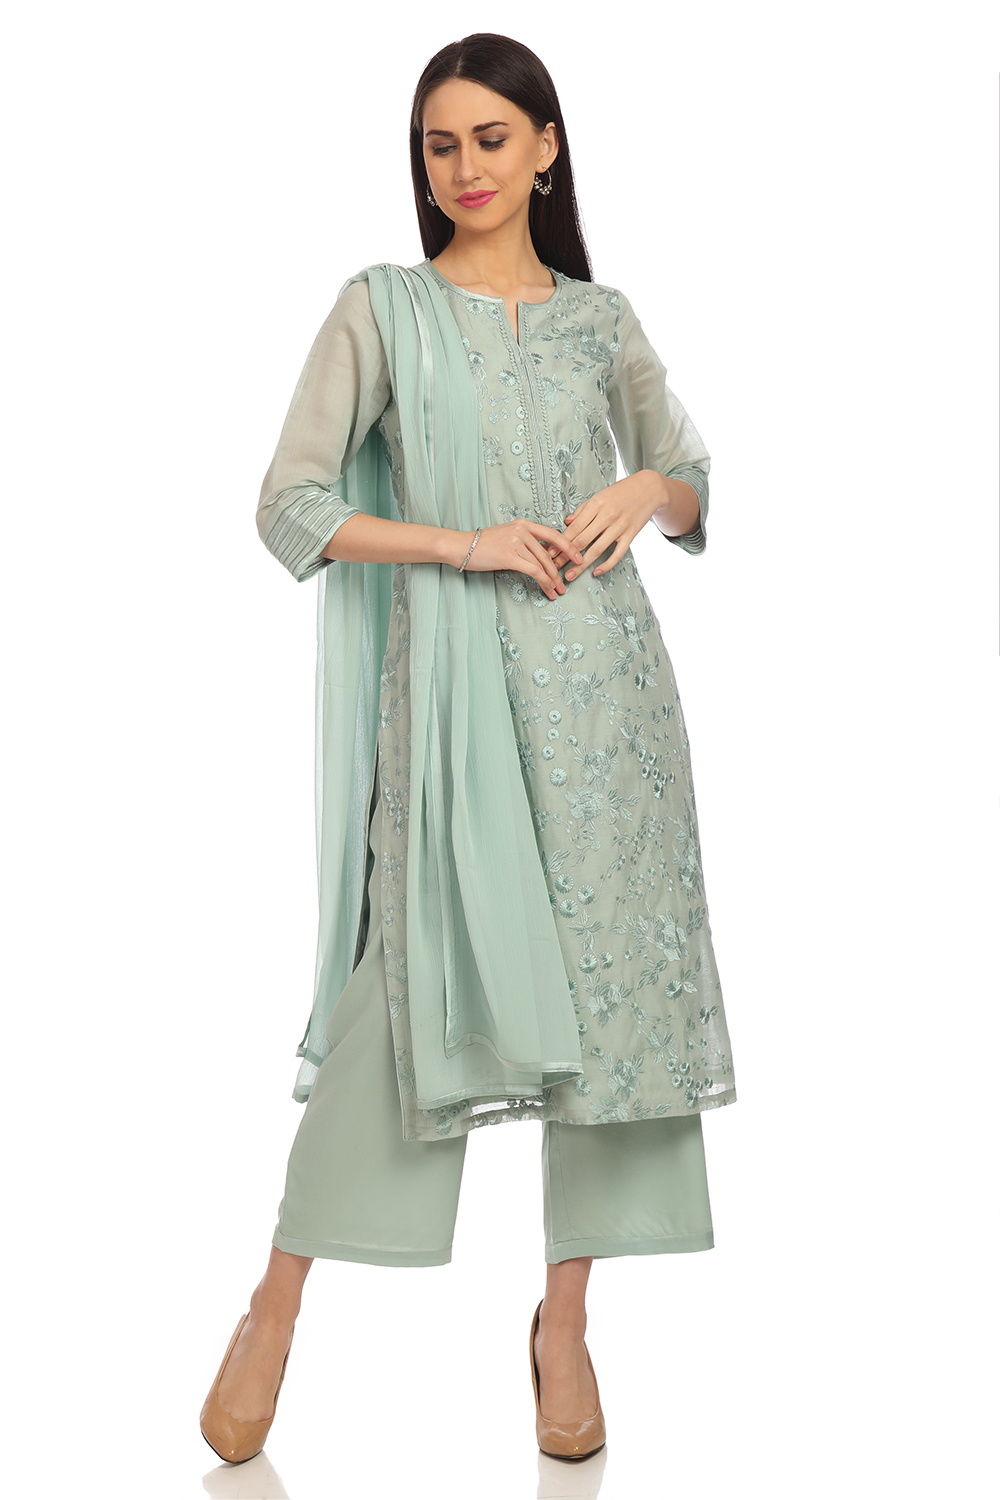 900ae71106 Buy Online Sea Green Straight Poly Cotton Suit Set for Women & Girls at  Best Prices in Biba India-S